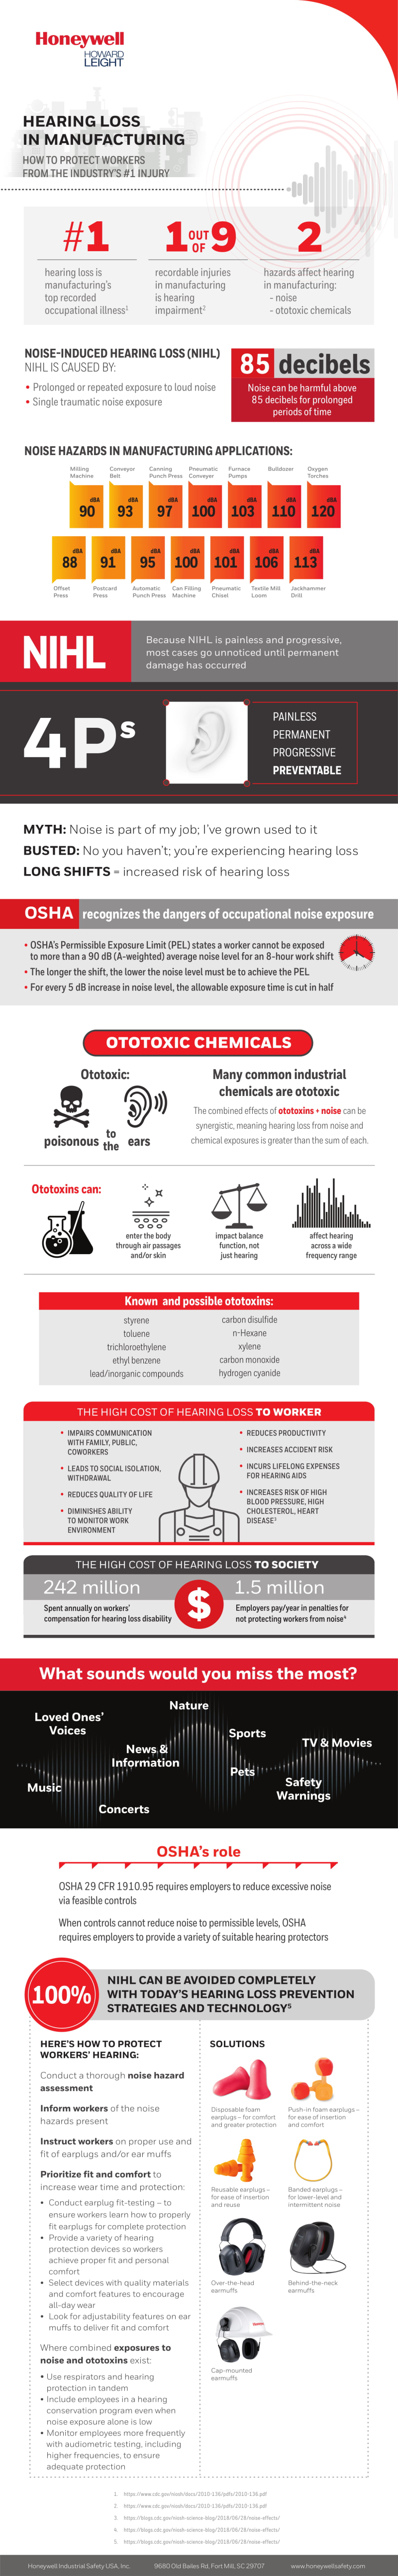 Hearing Loss in Manufacturing Infographic from Honeywell Howard Leight